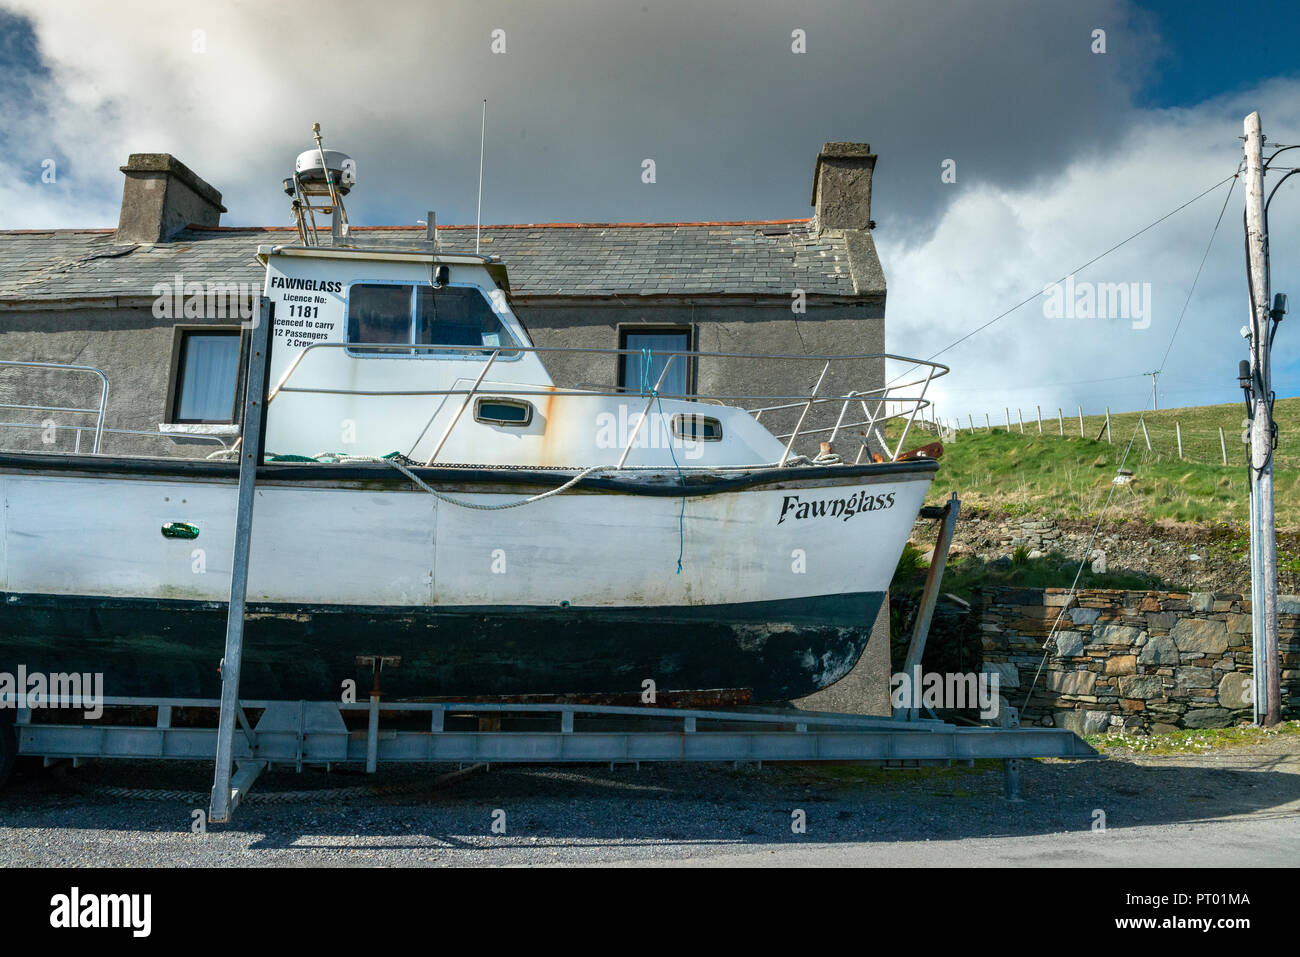 Ireland, Inish Boffin Island, Boat in dry dock waiting to be repaired and painted. Stock Photo